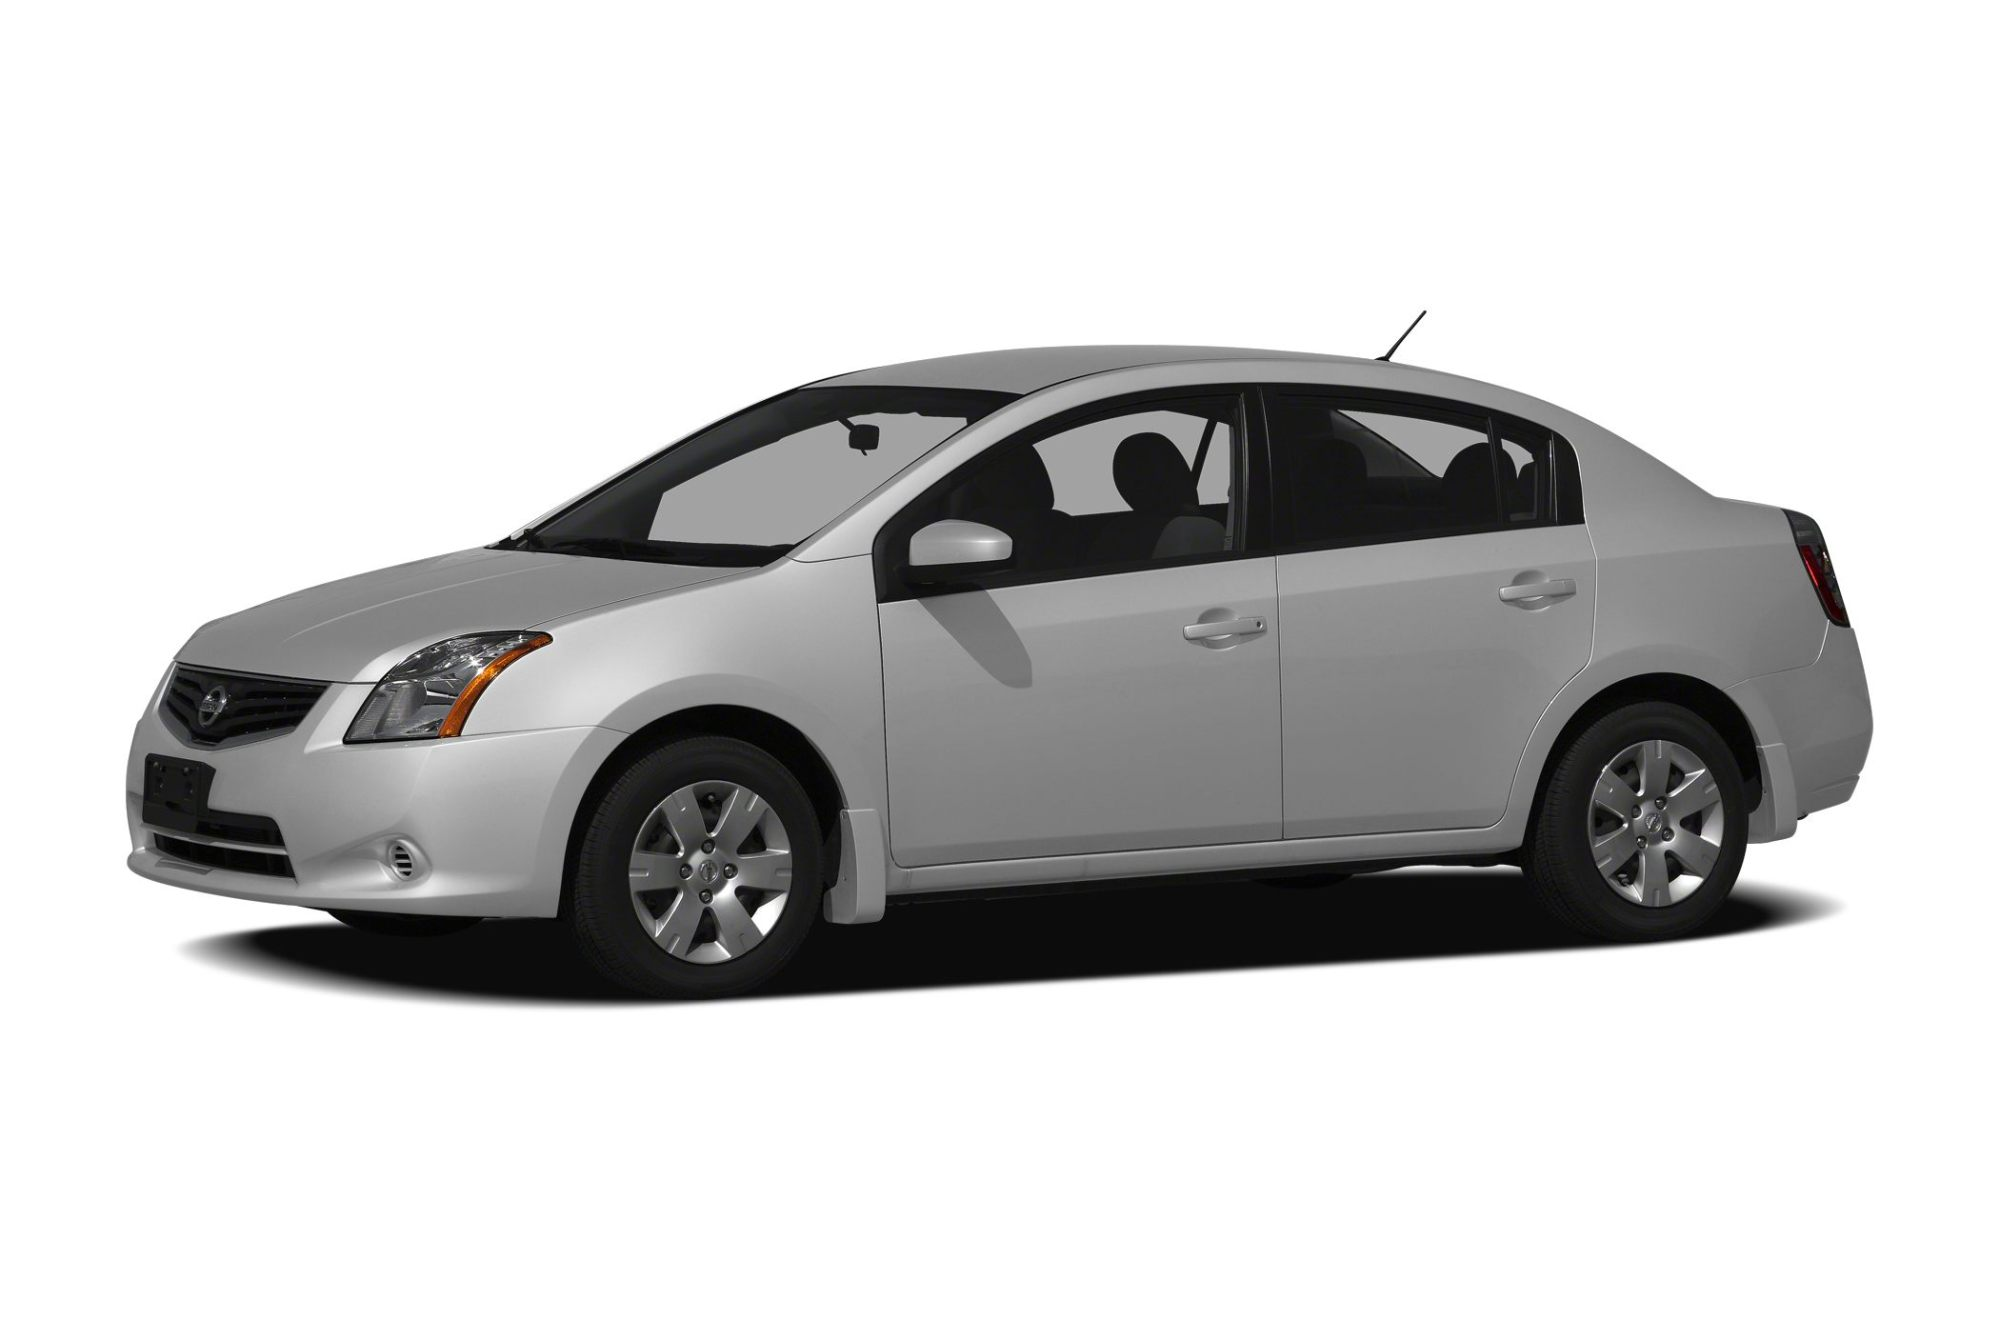 hight resolution of 2010 nissan sentra roof